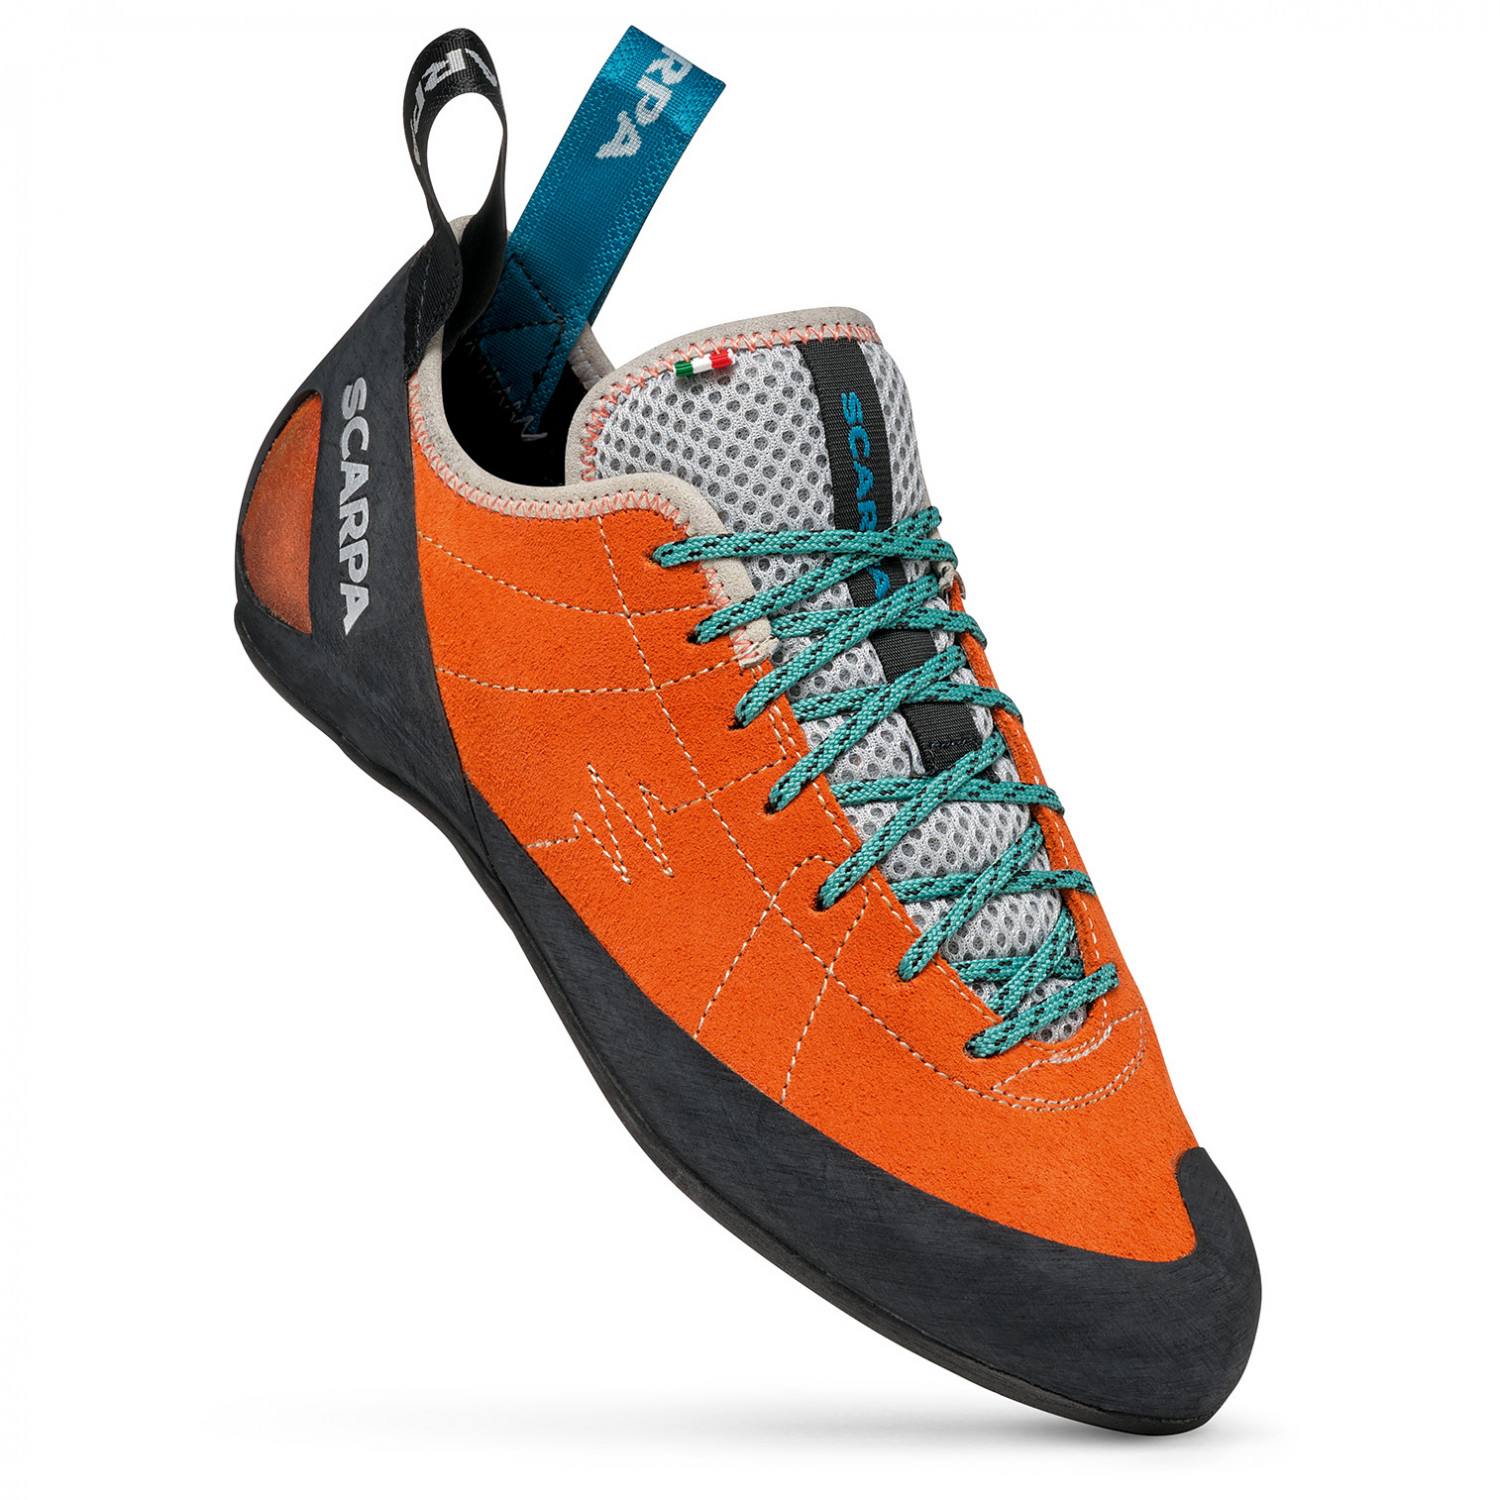 Women's Shoes Delivery Helix Uk Climbing Scarpa Free wTtfpqTExn